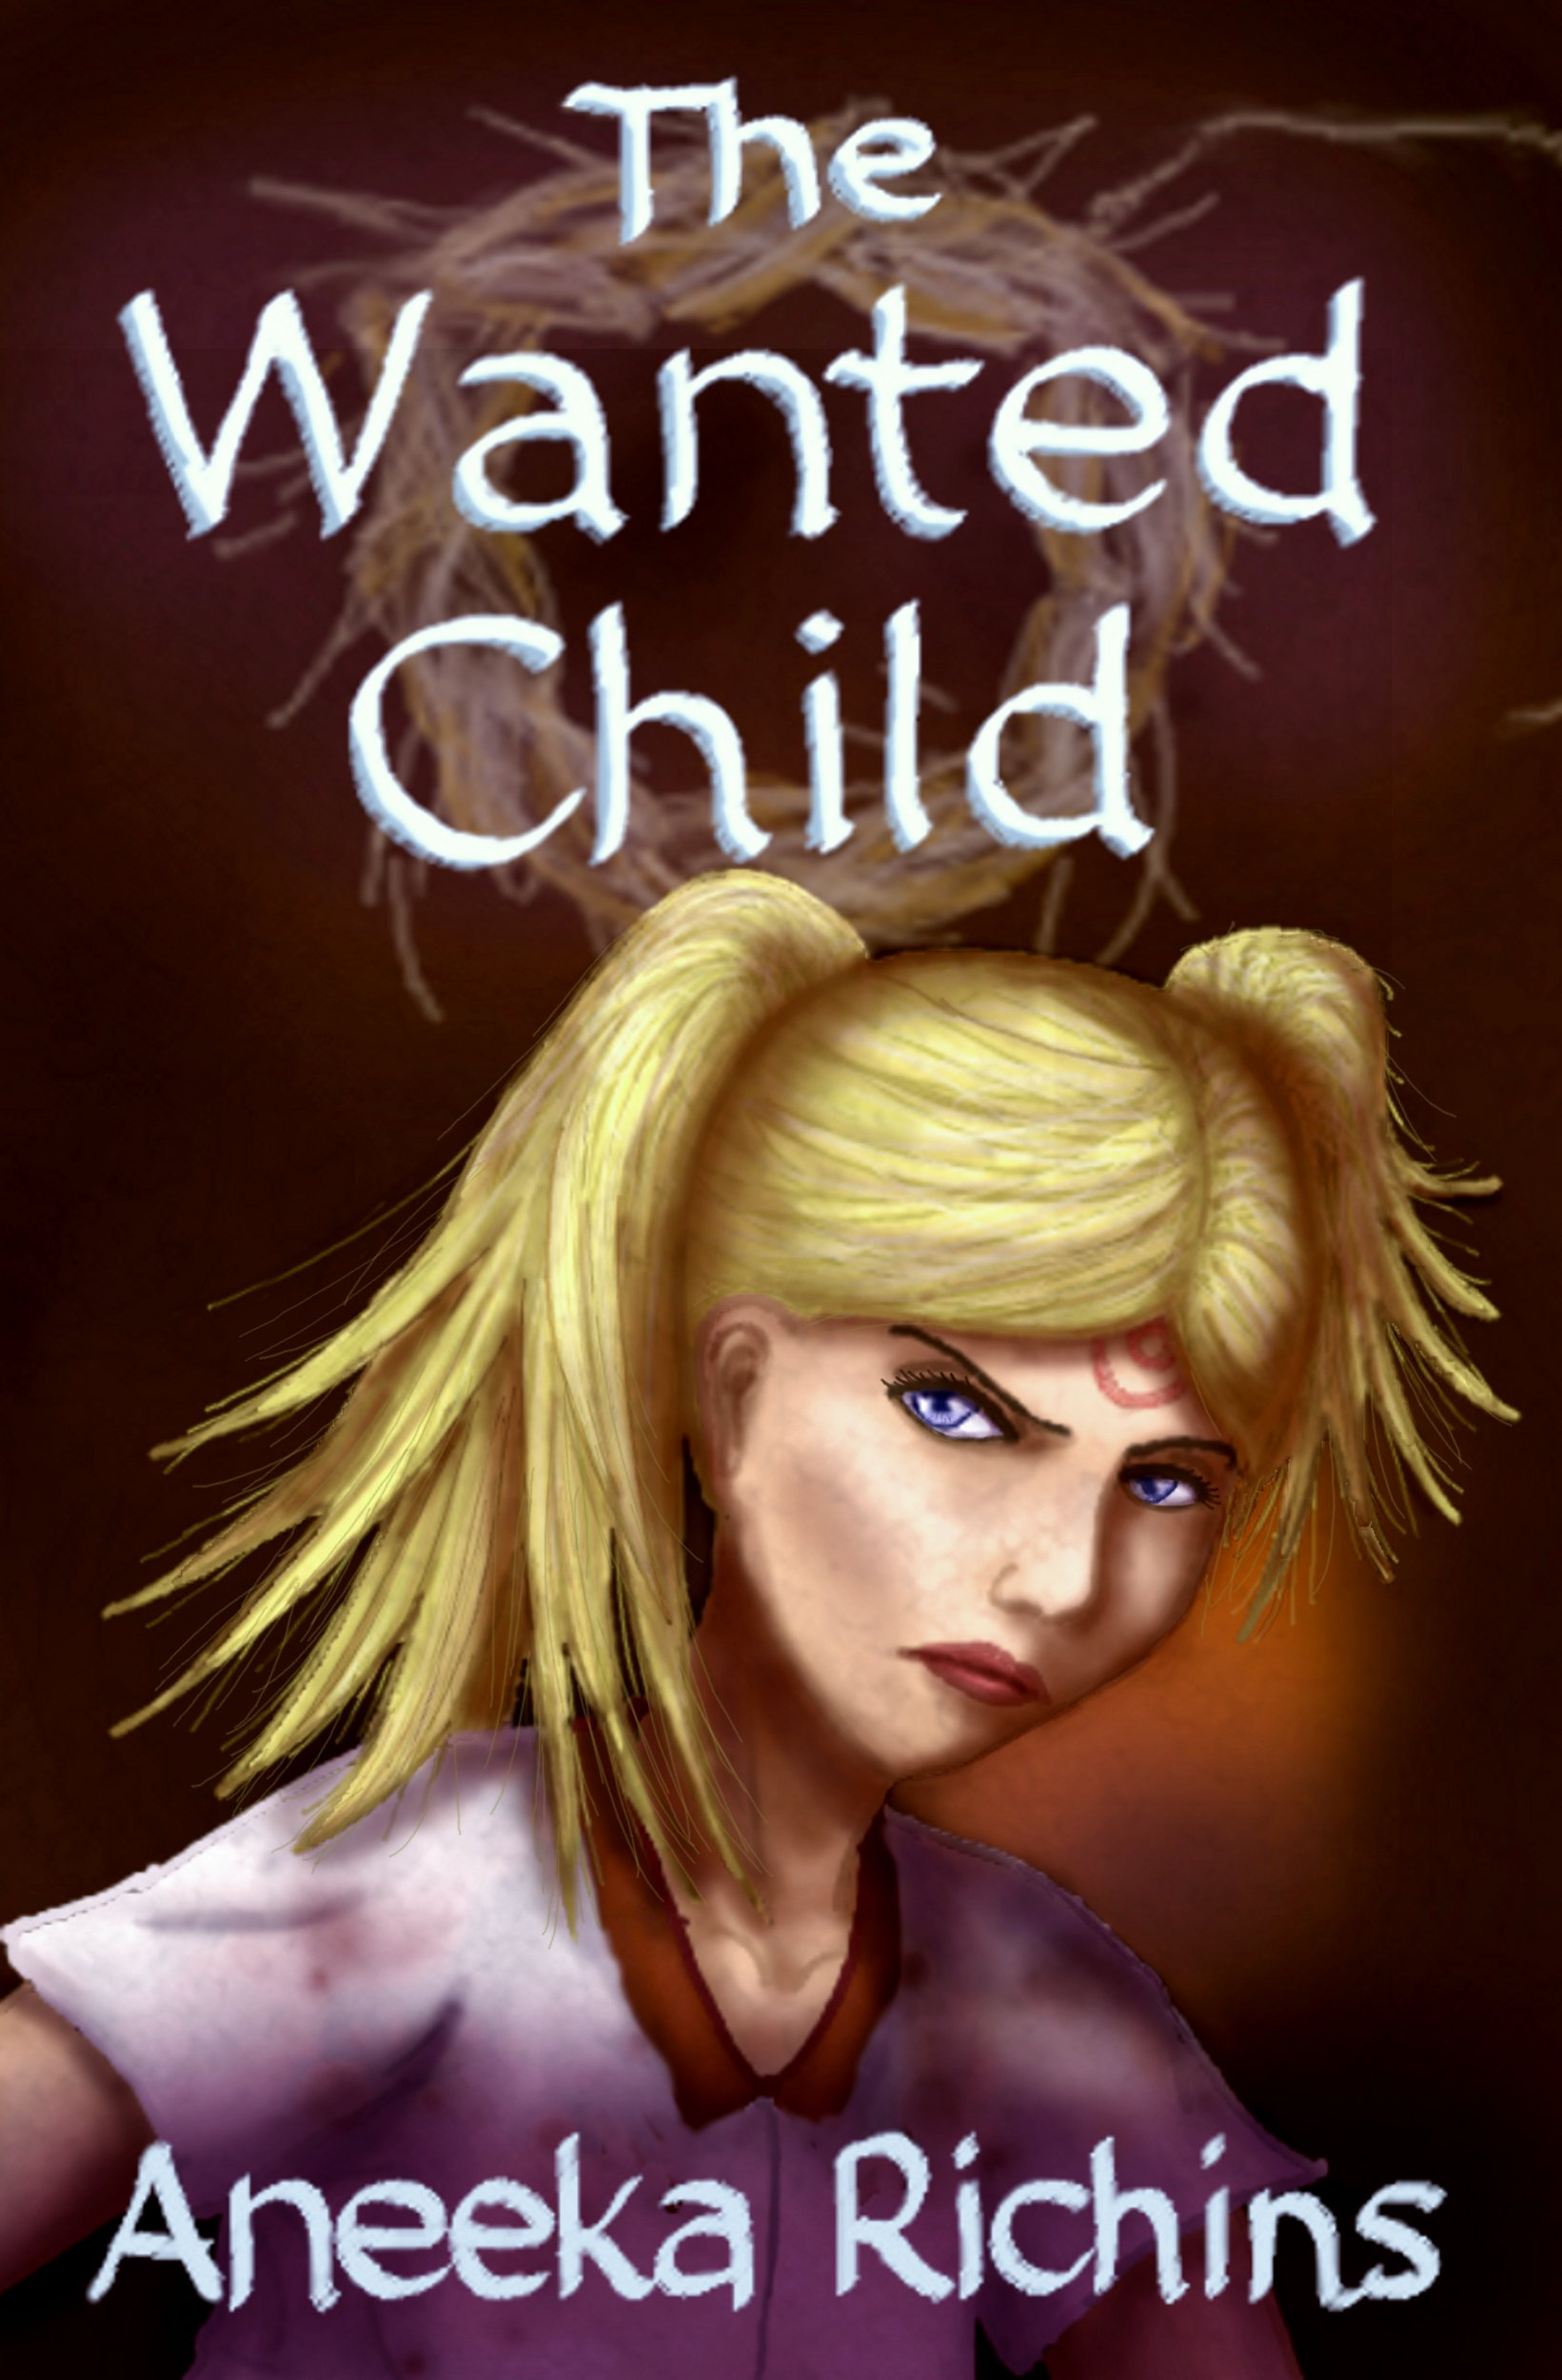 The Wanted Child by Aneeka